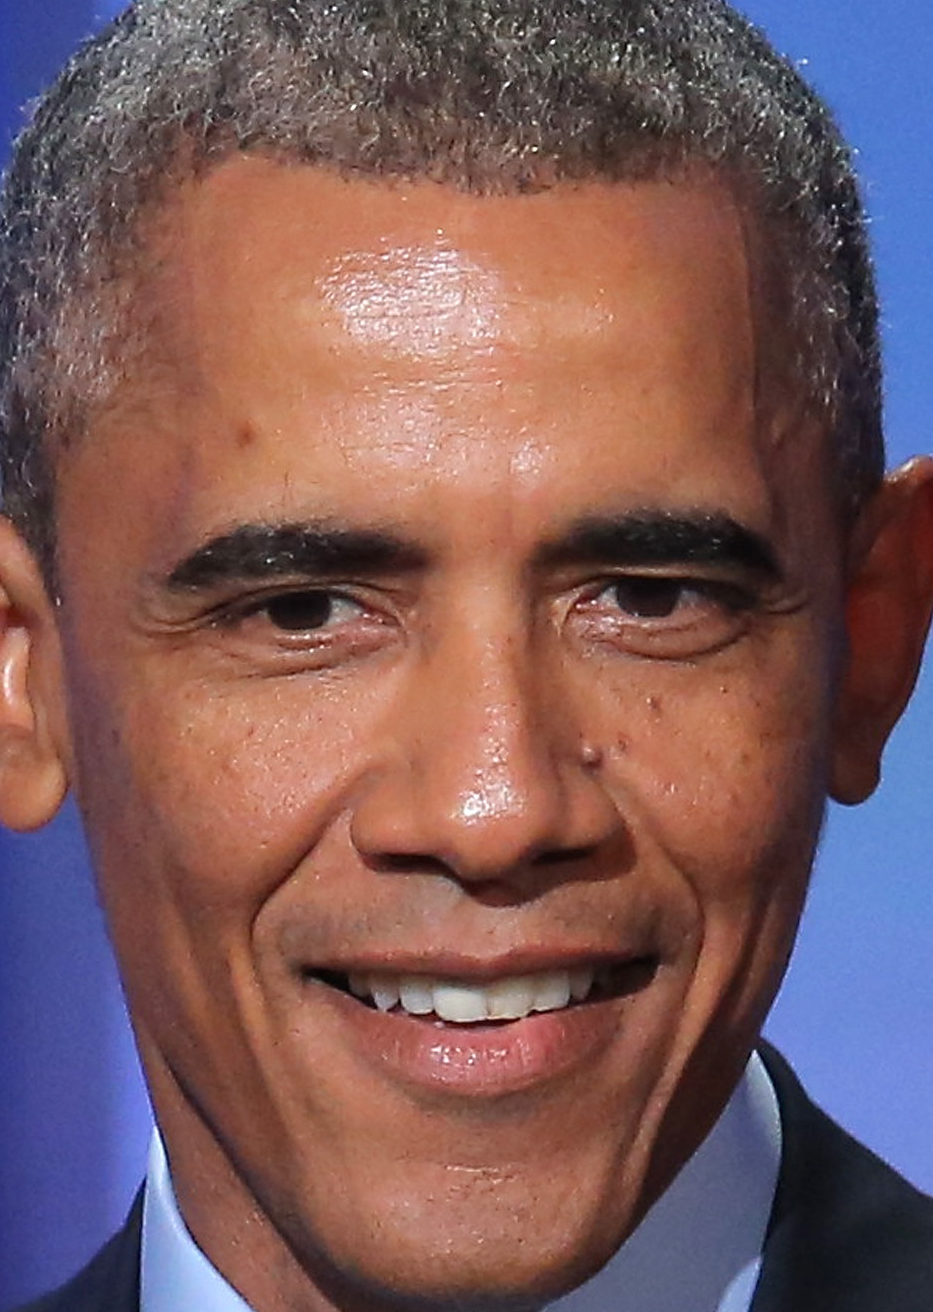 Obama Serious Face Png